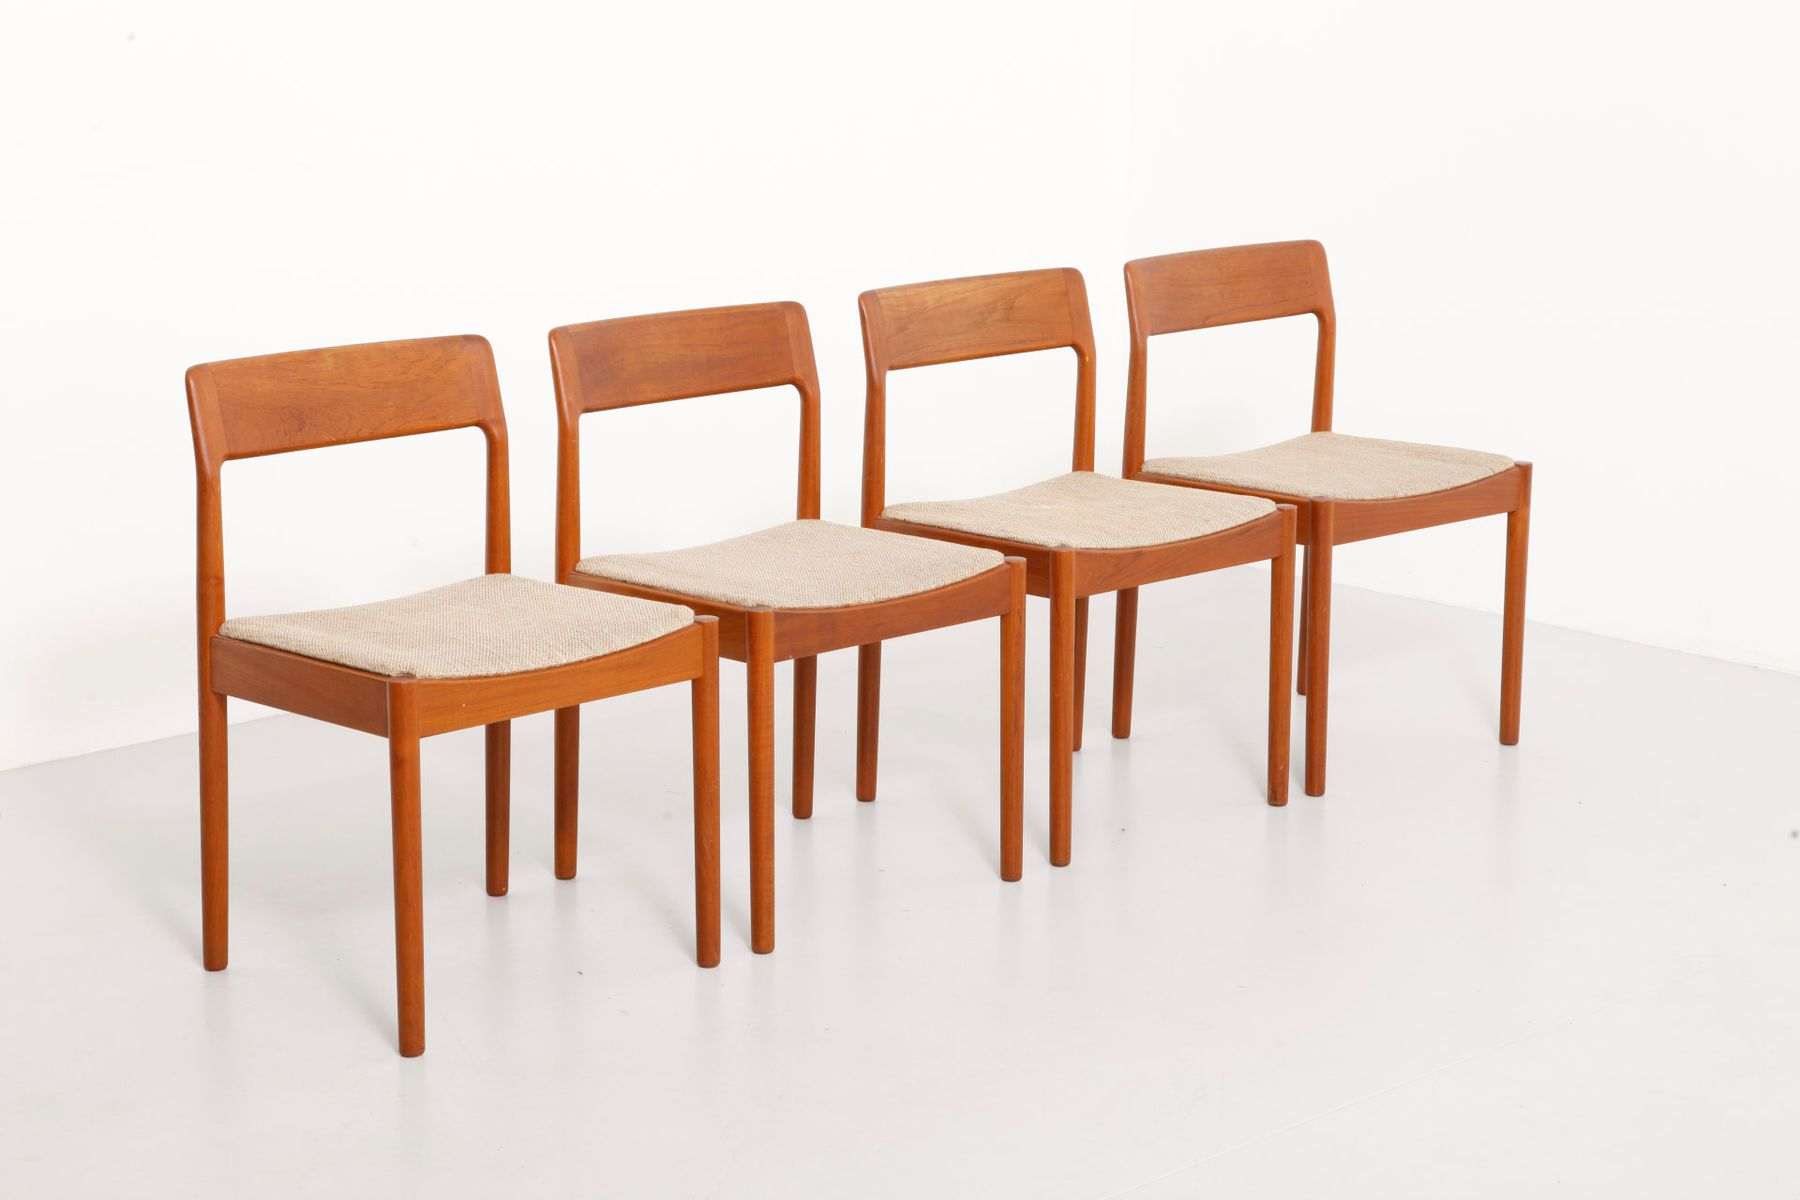 teak dining chairs from norgaard set of 4 for sale at pamono